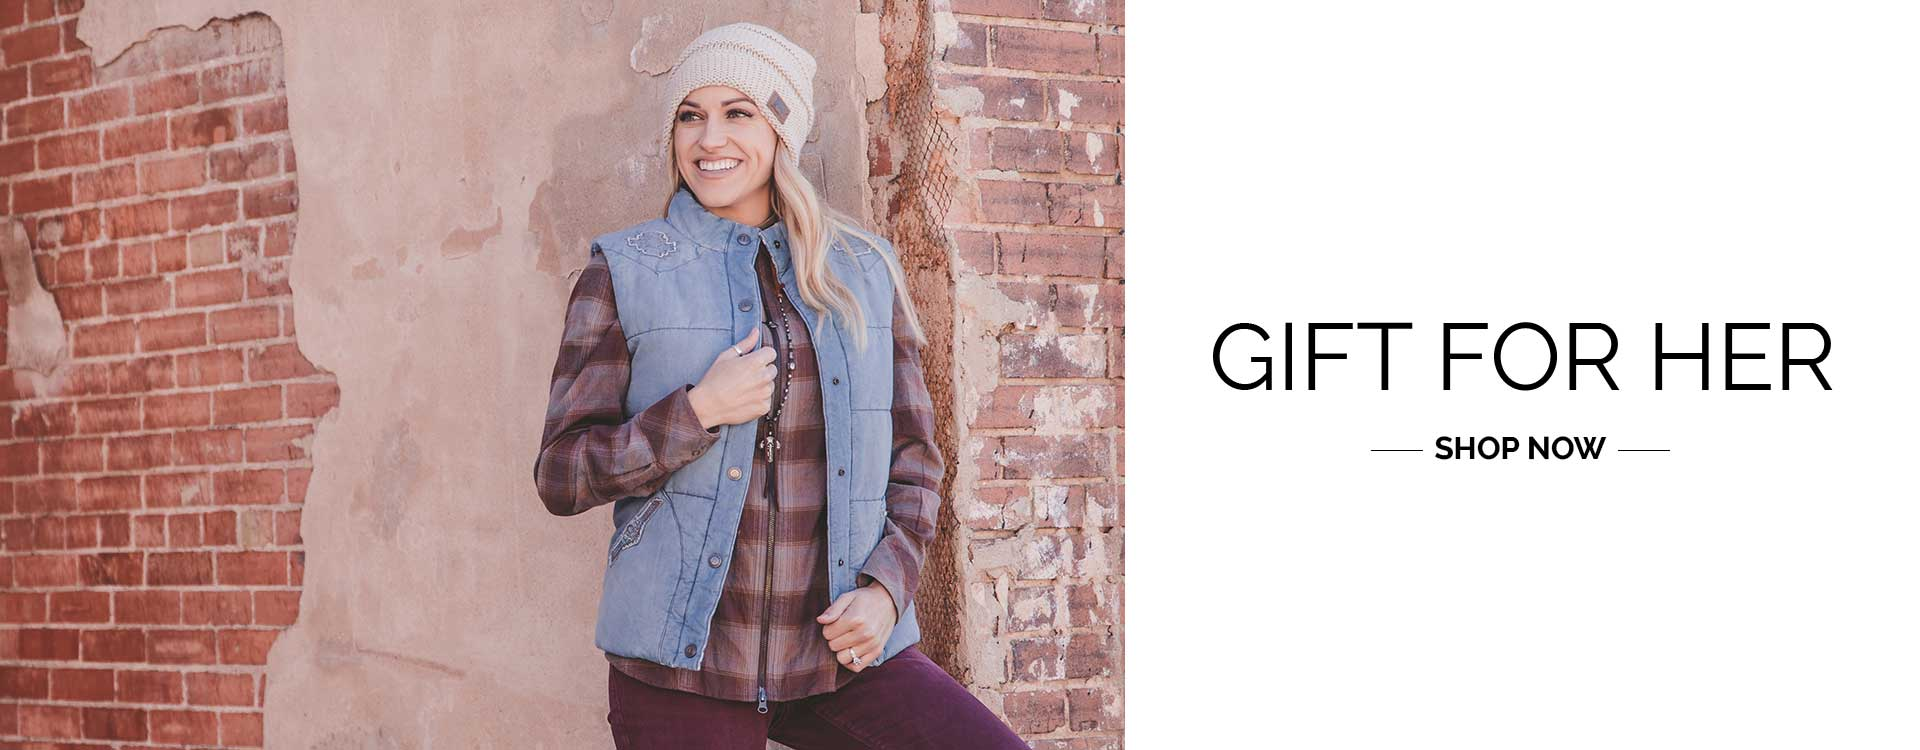 Gifts for Her Shop Now - 2020 STS Ranchwear Black Friday Cyber Monday Sales